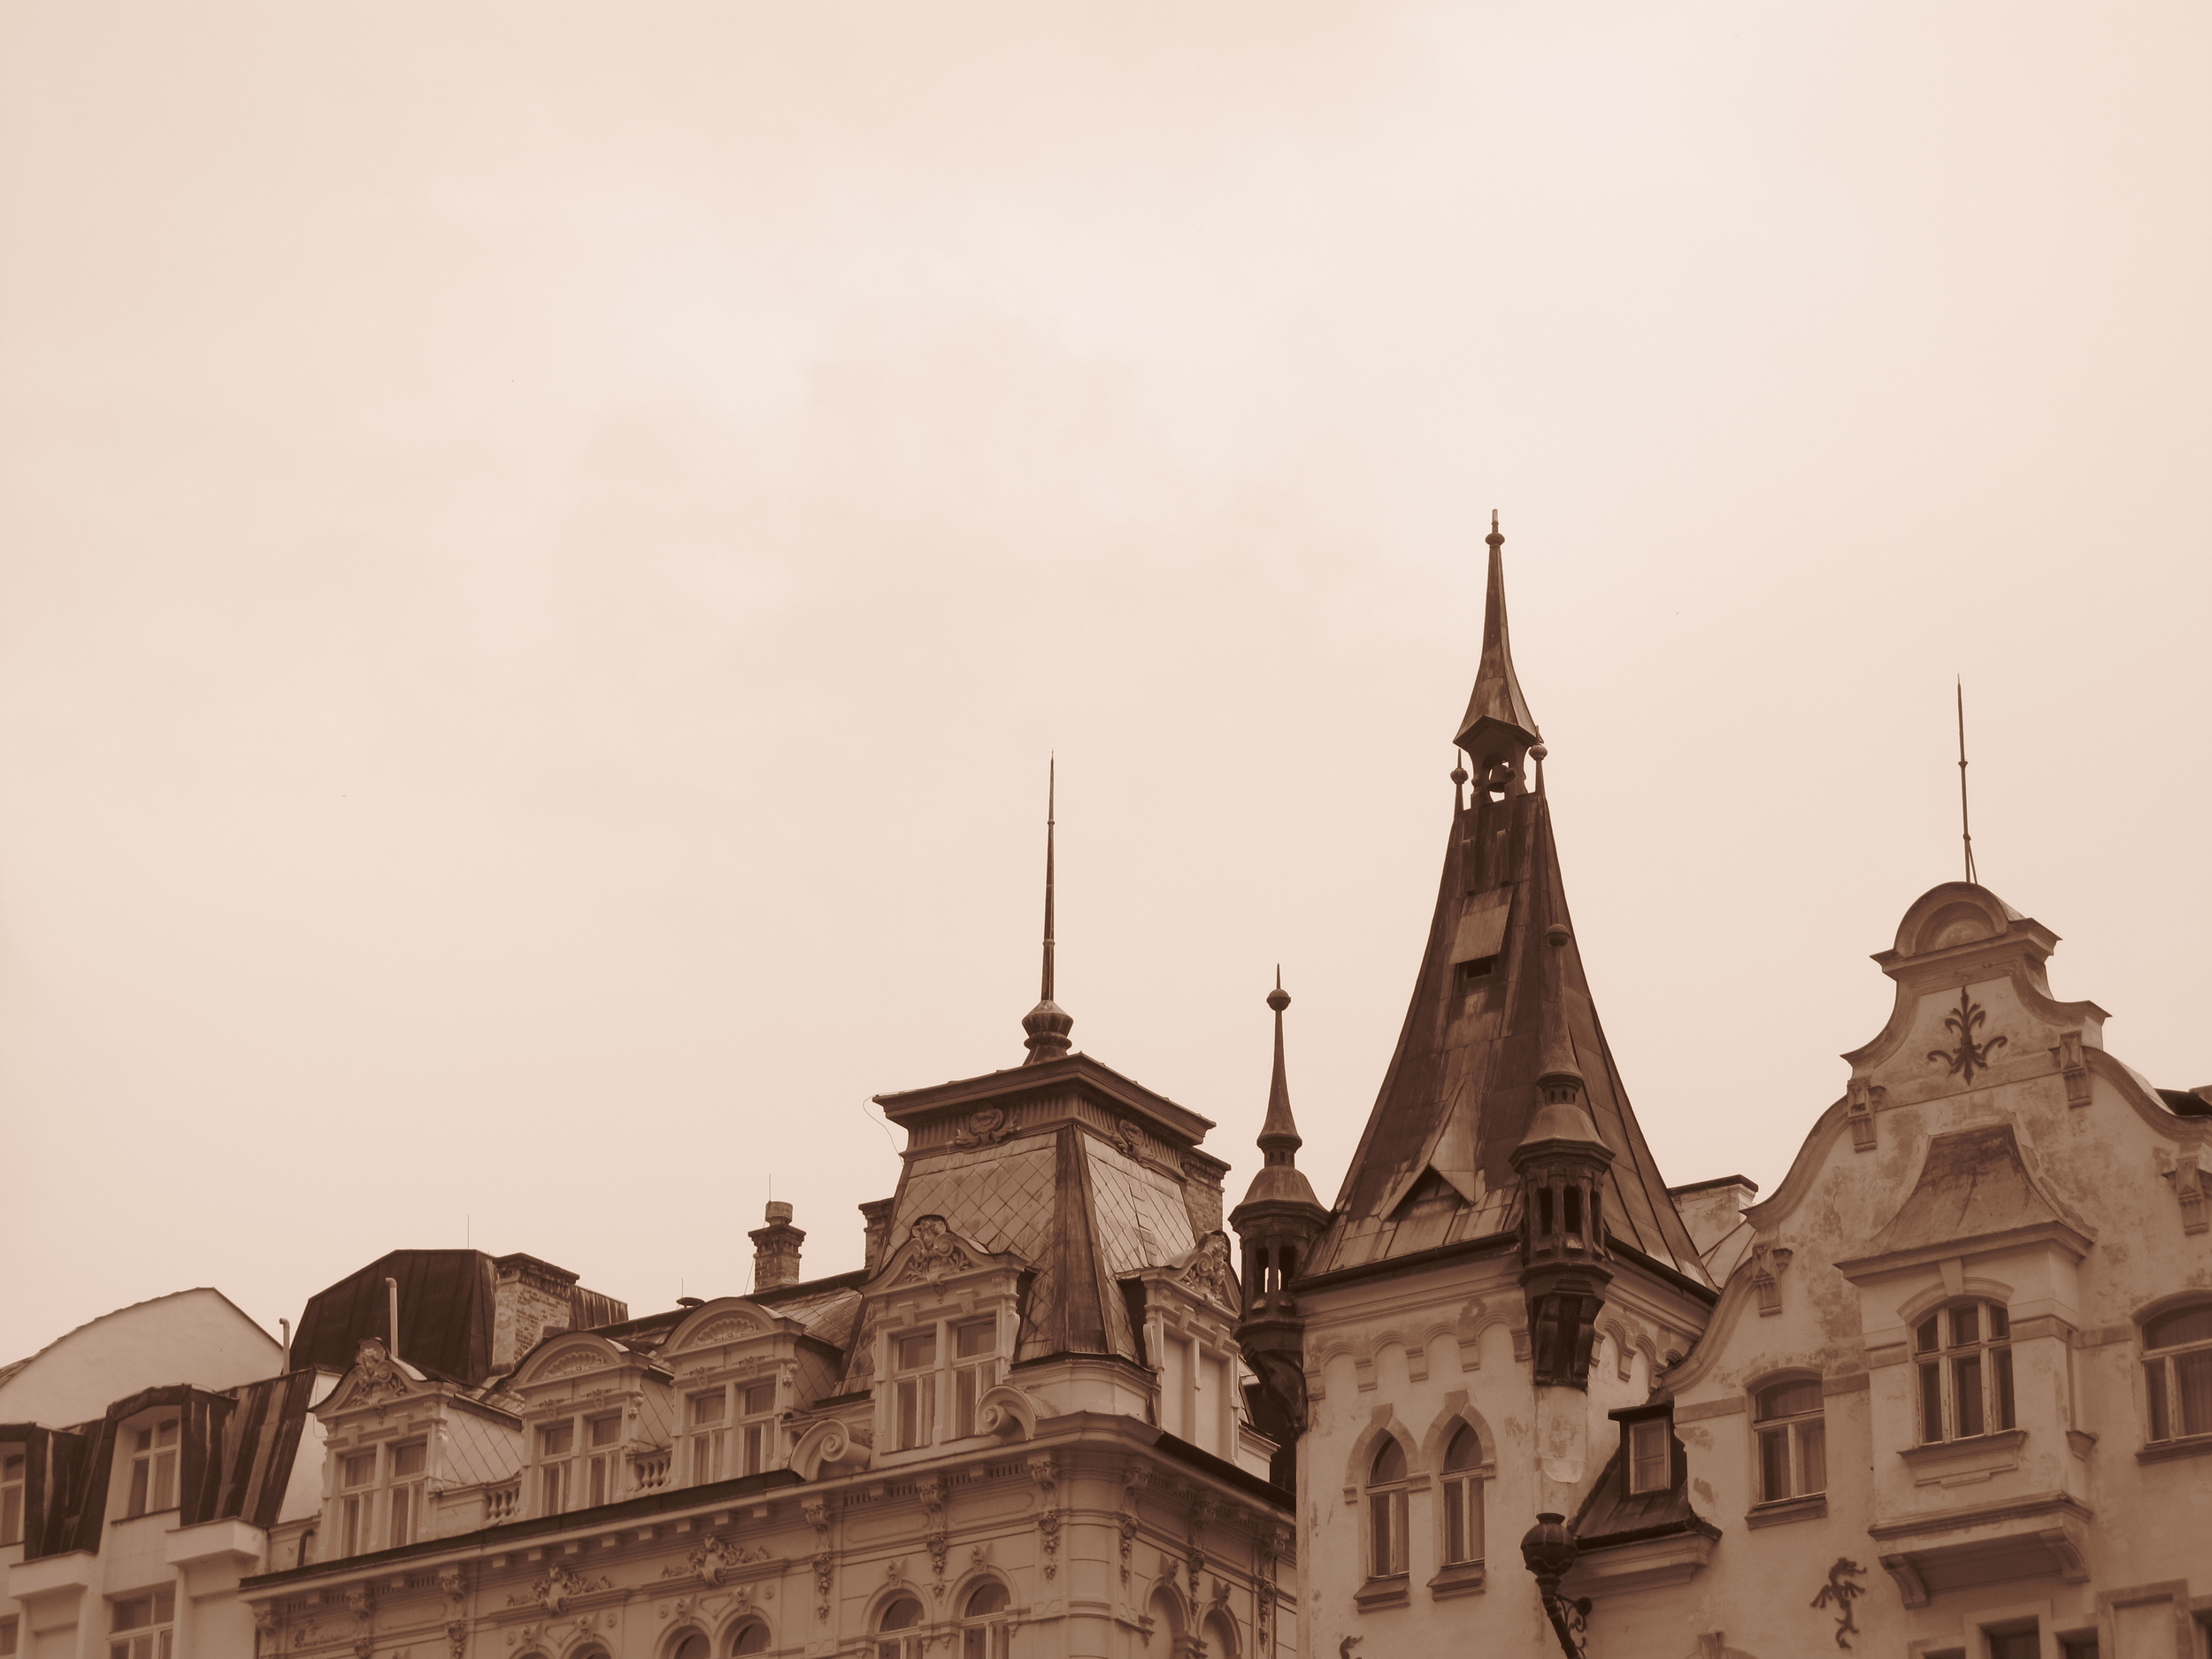 Karlovy Vary architecture - rooftops and spires.